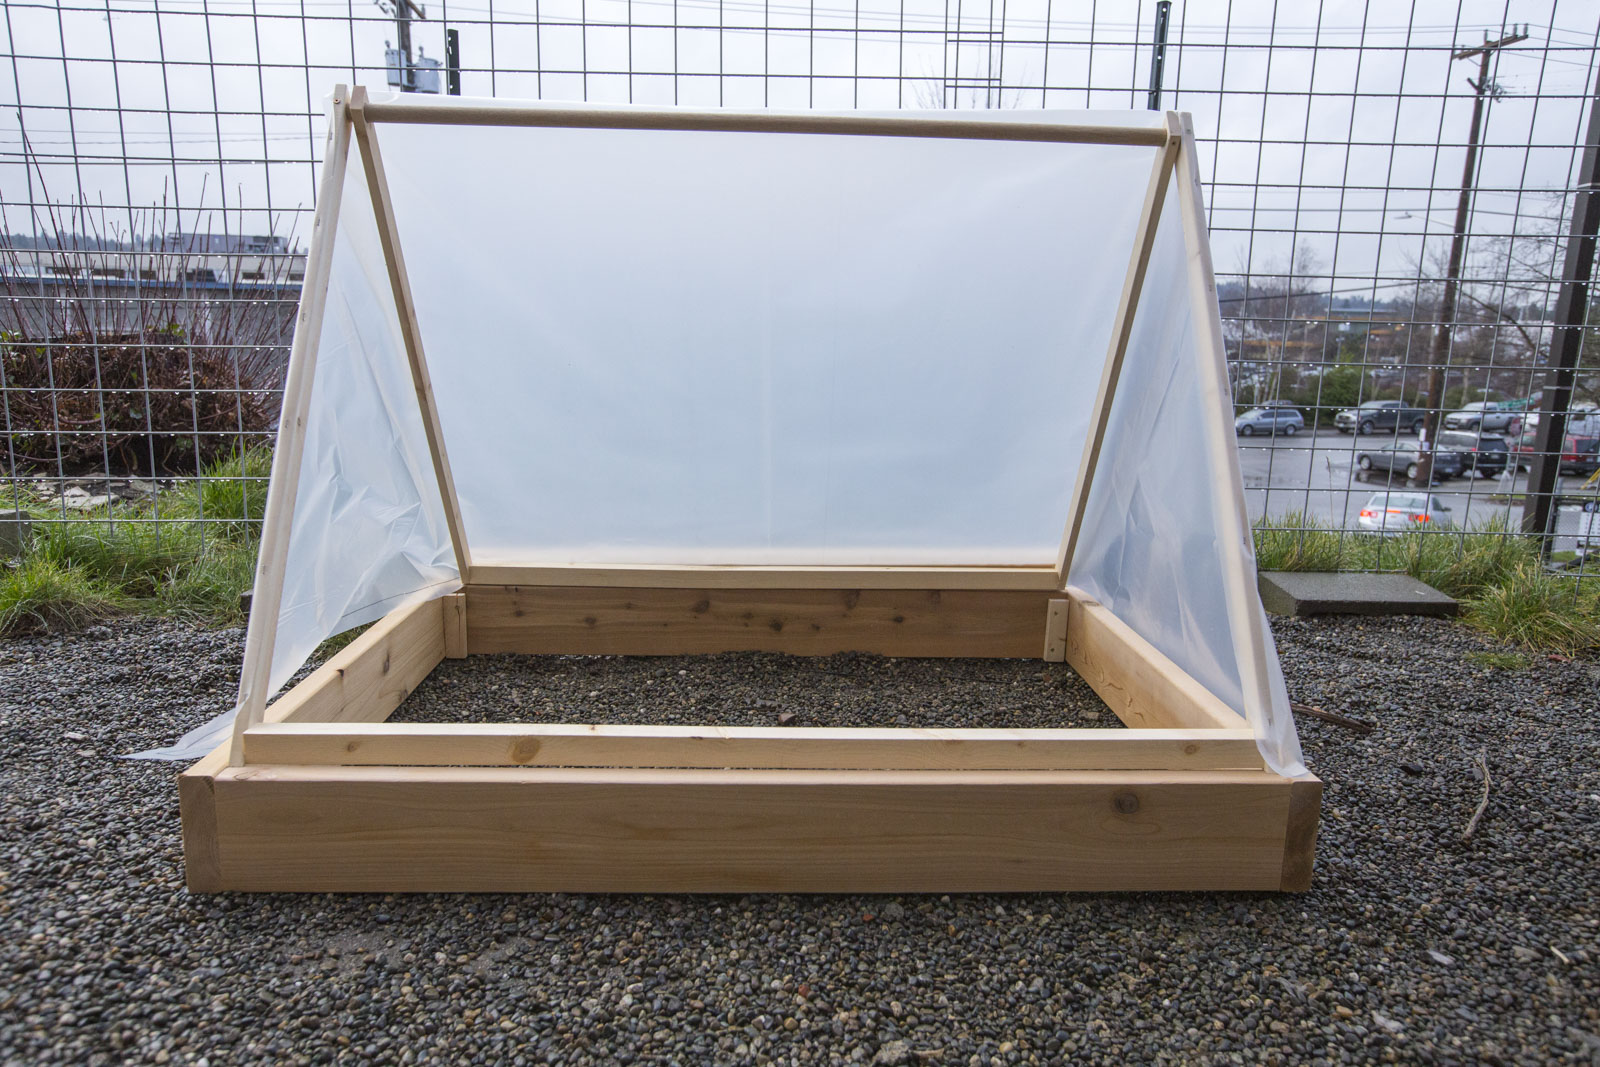 diy cold frame tent